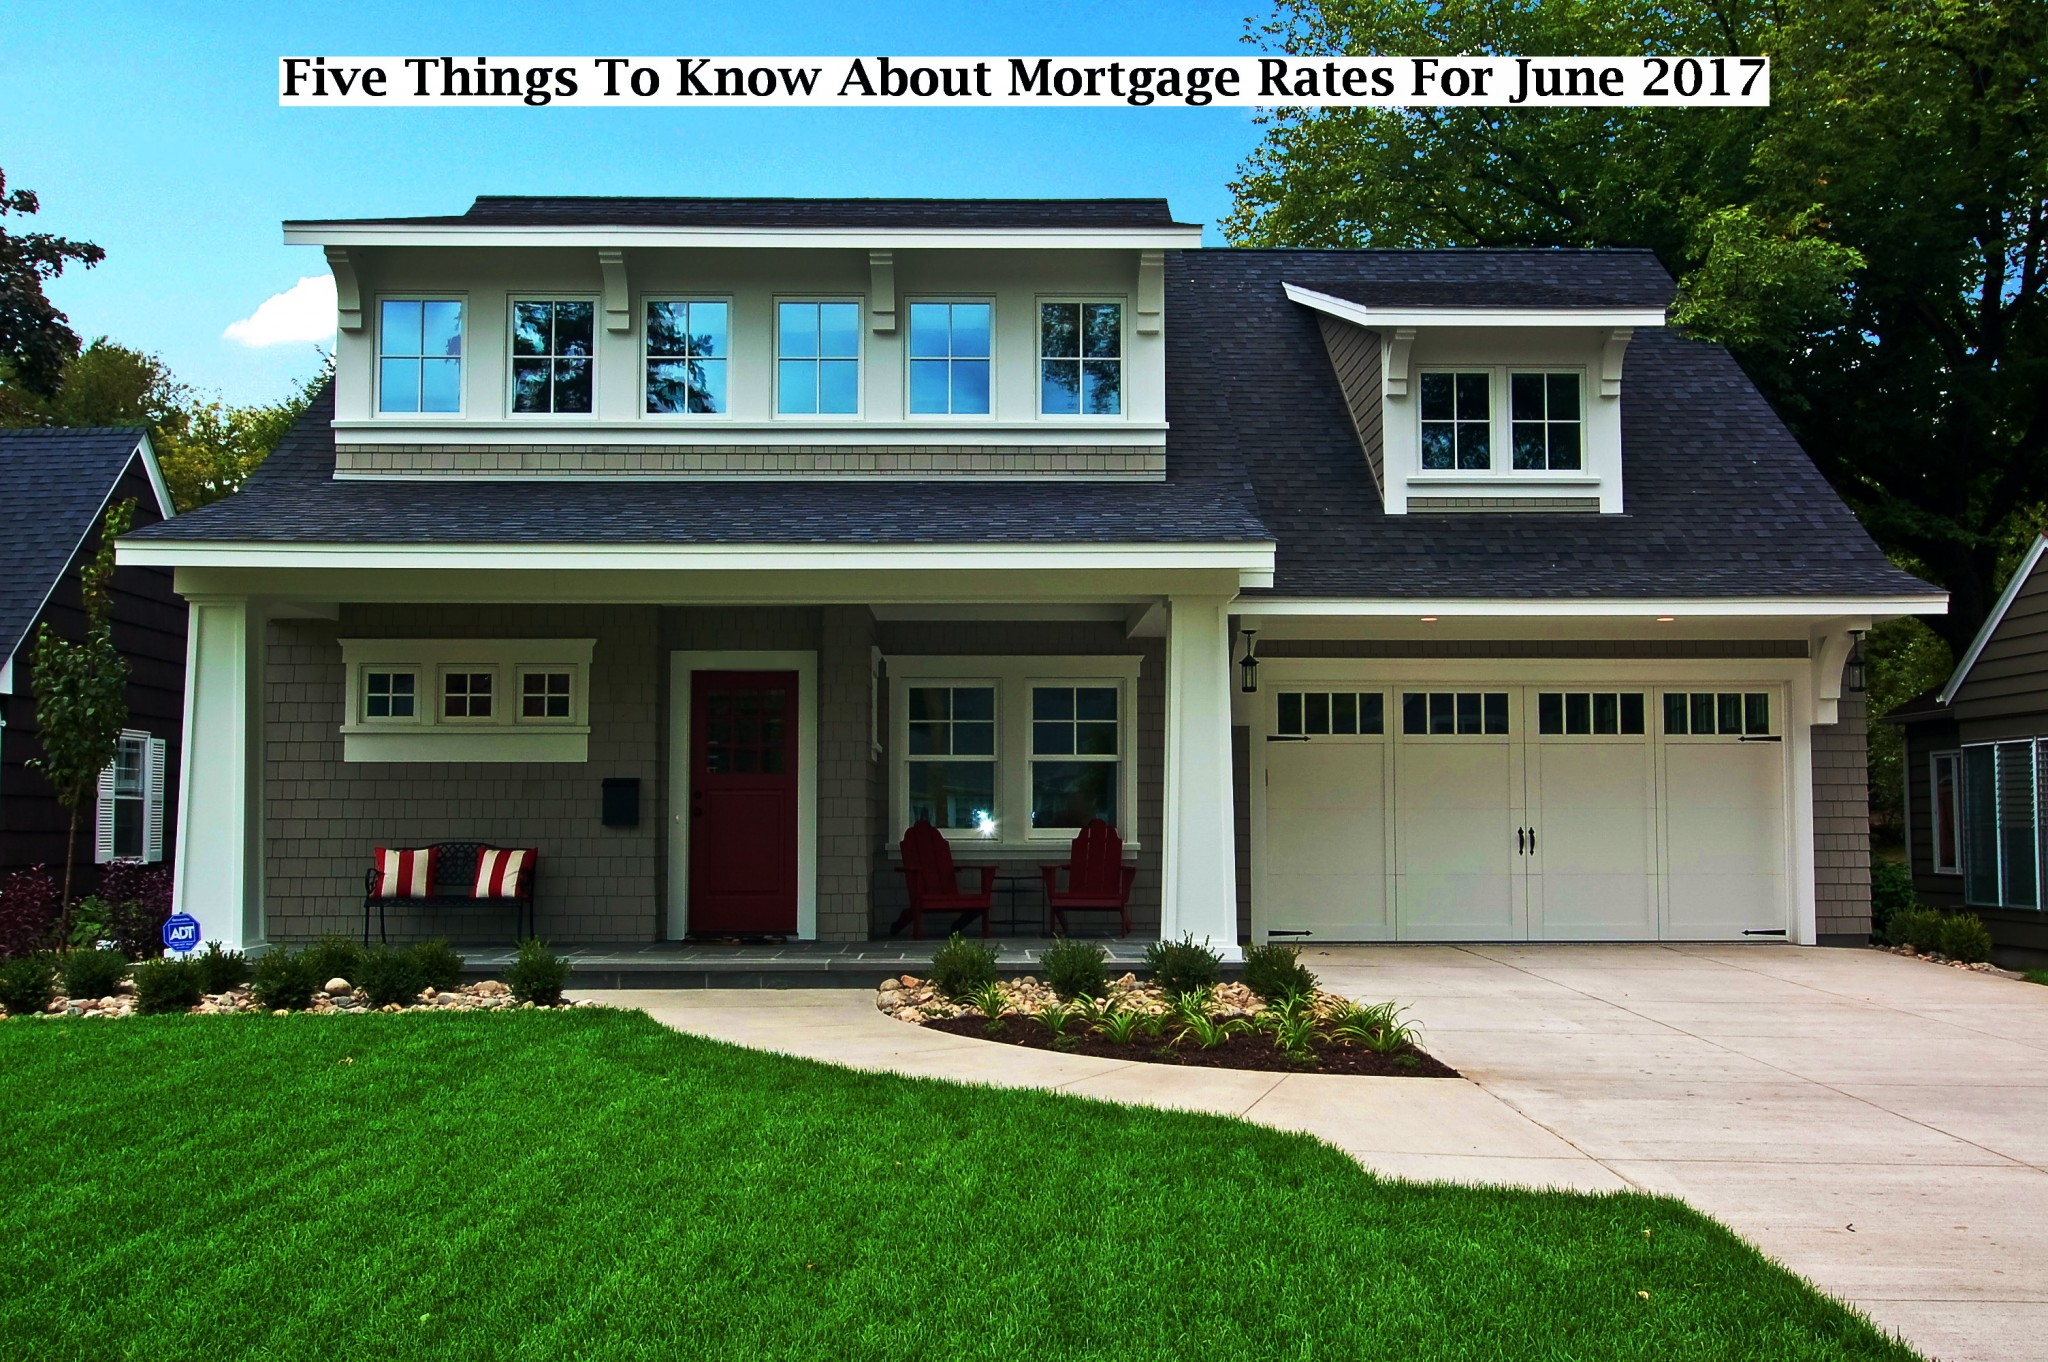 Mortgage Rates For June 2017 | NSH Mortgage | Florida 2017